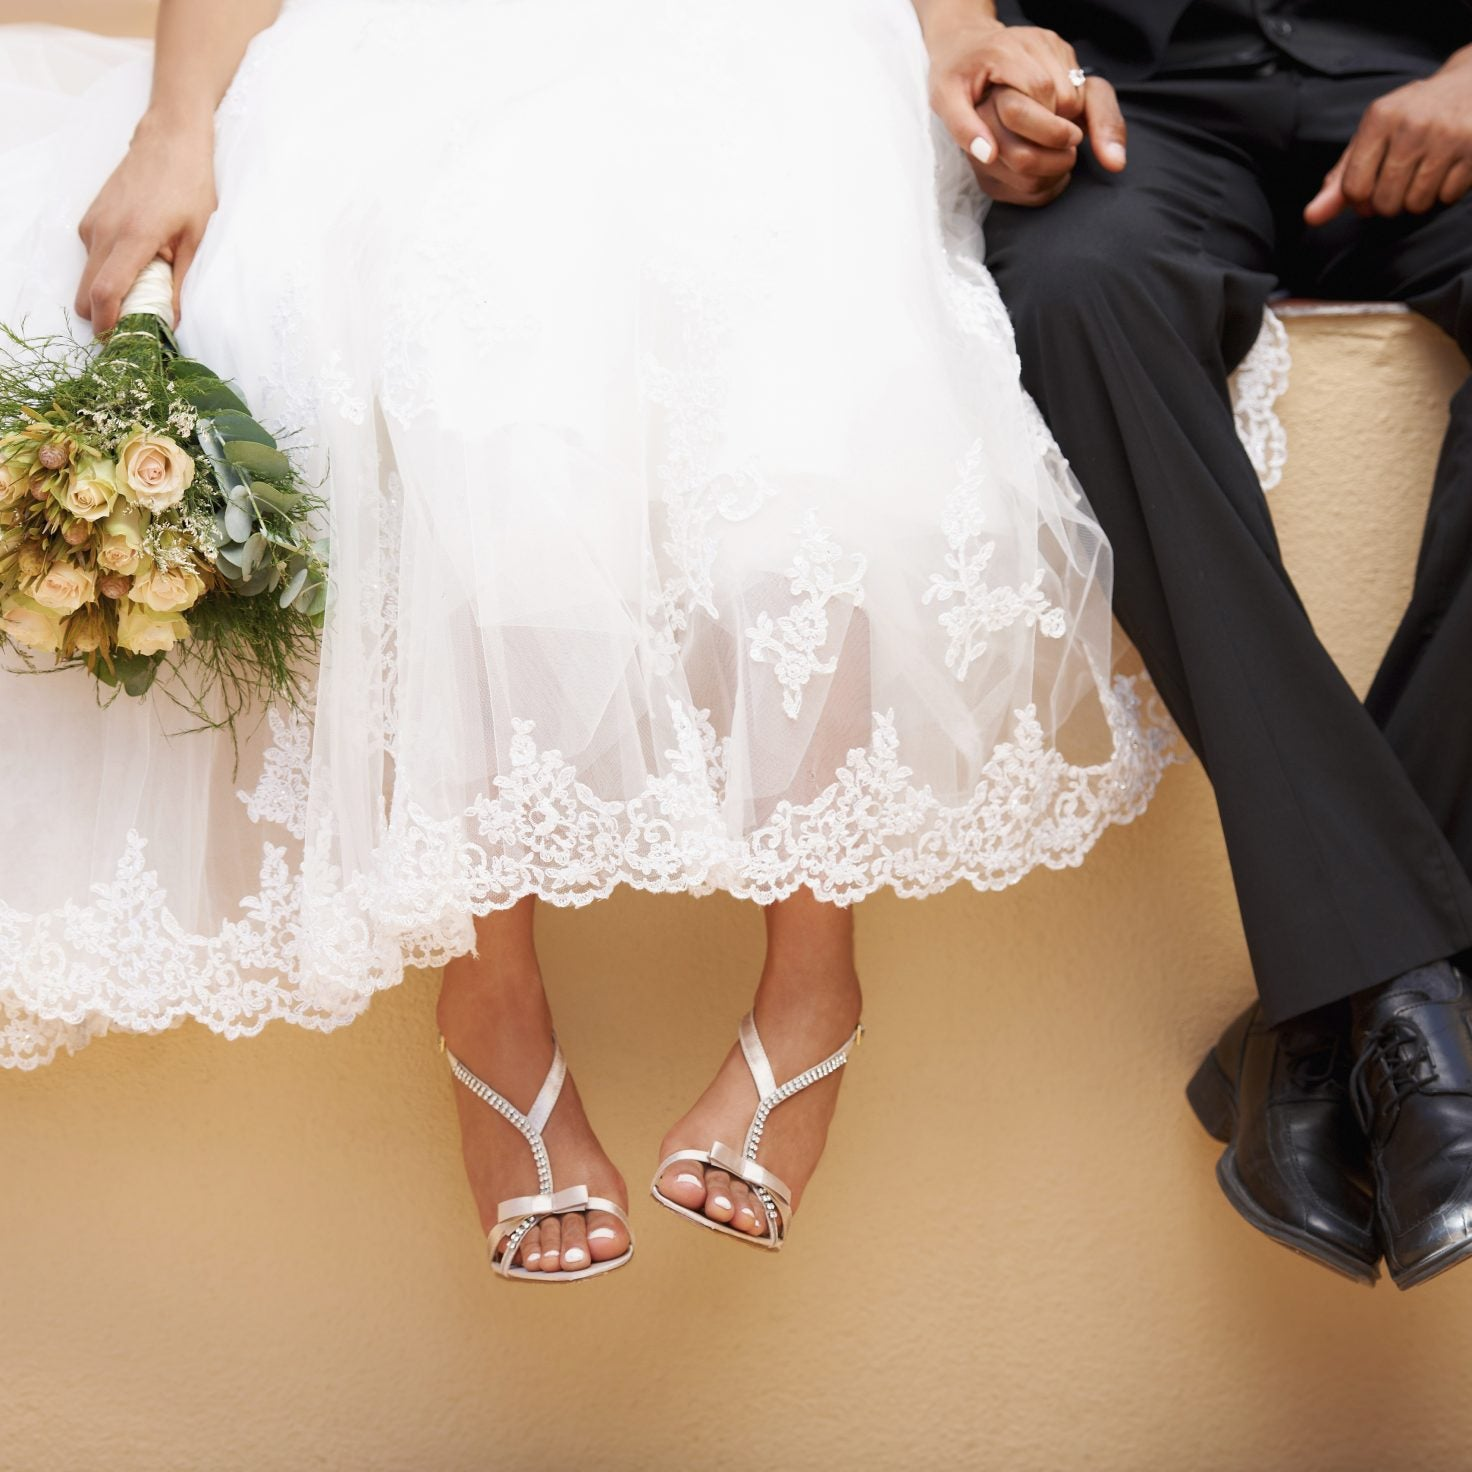 Brides In These States Spend A Year's College Tuition On Their Wedding